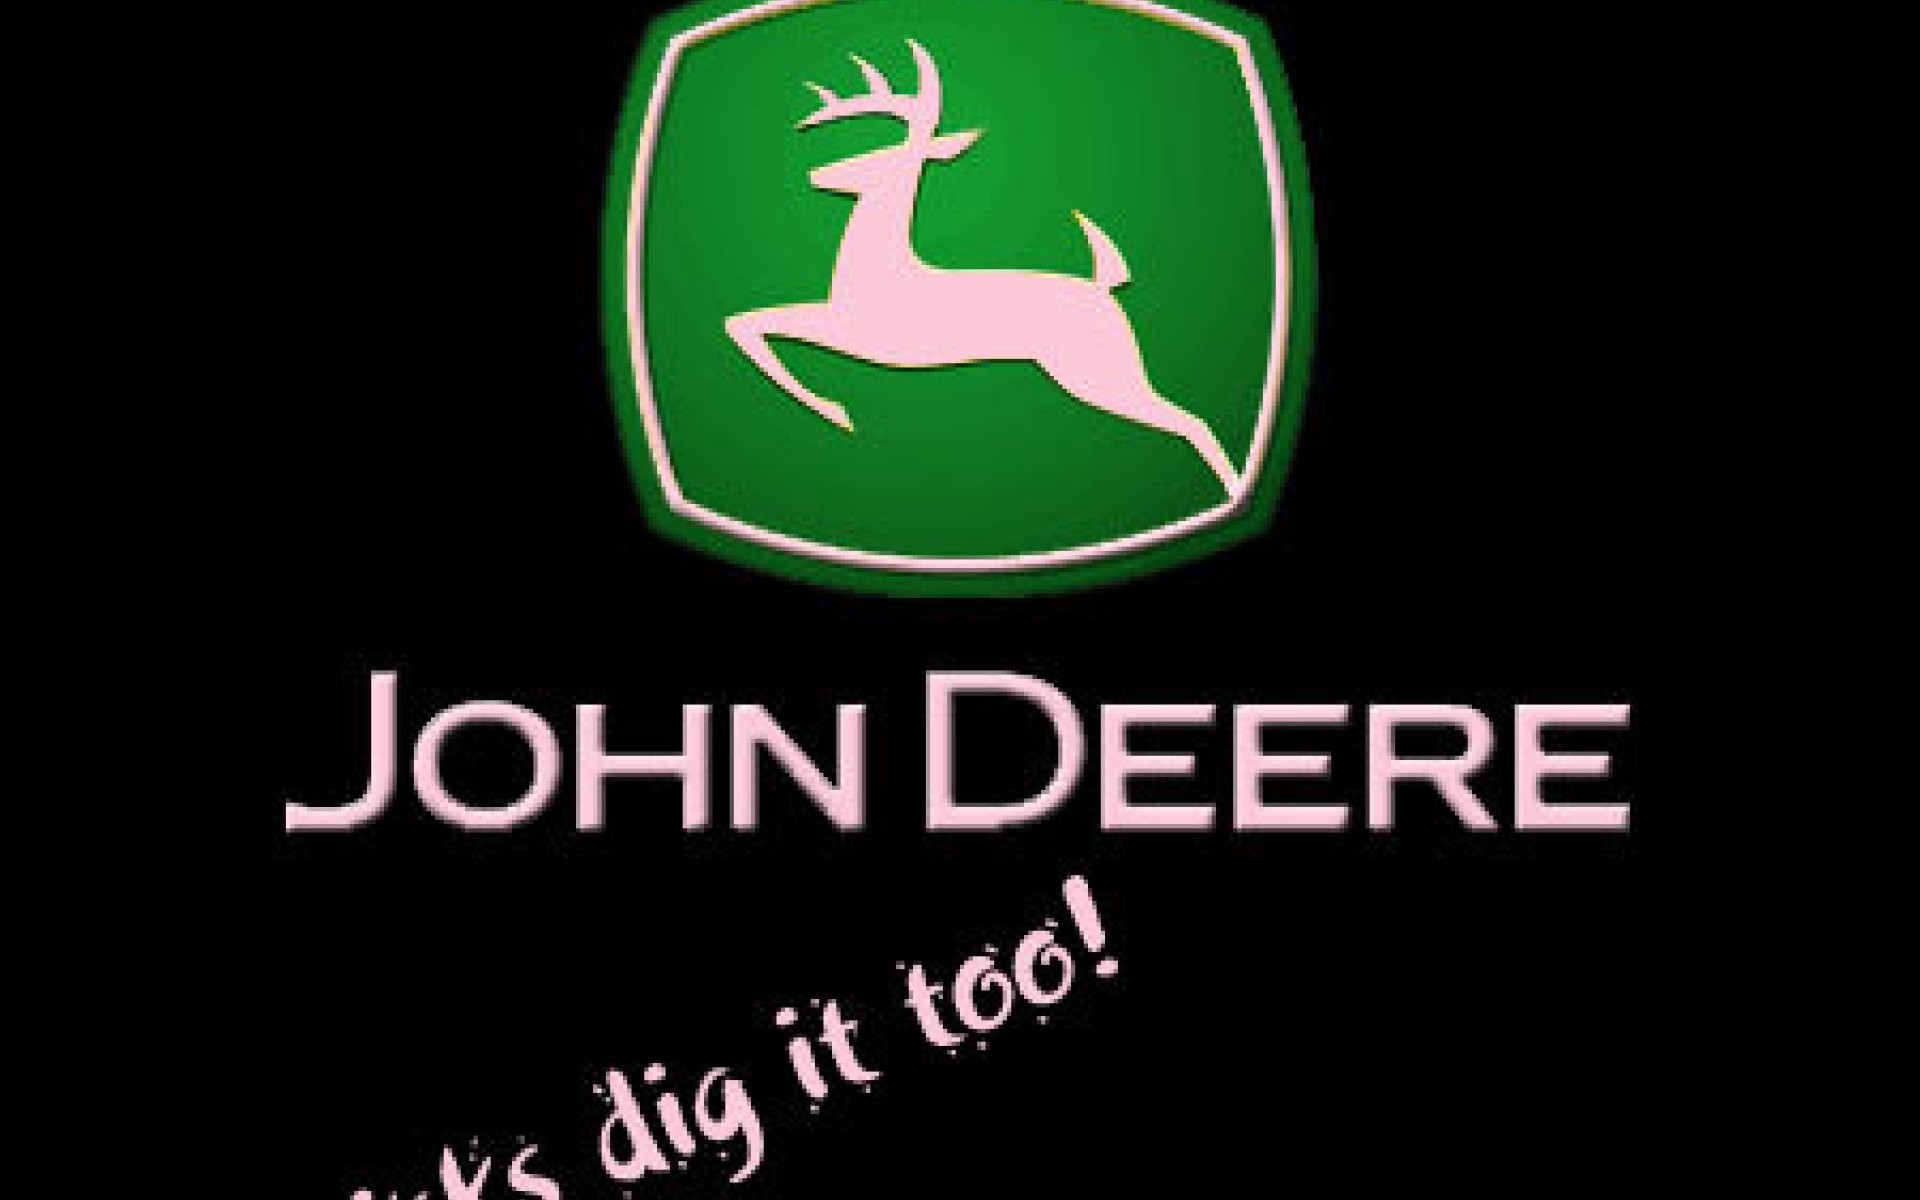 1920x1200 John Deere Wallpaper 20 Jpg · Download · Free ...